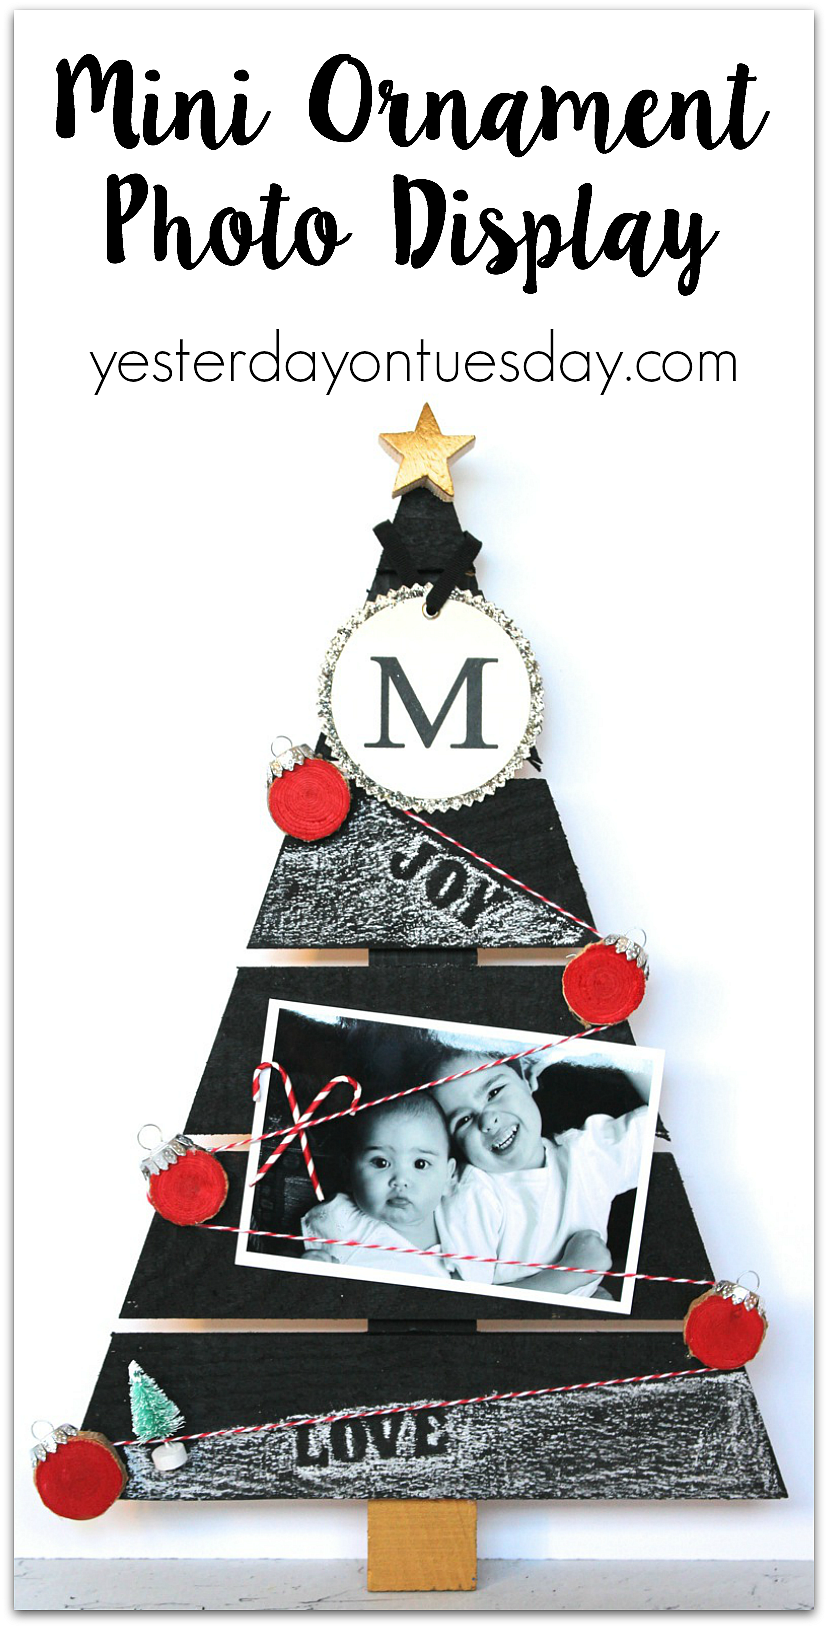 Mini Ornament Photo Display